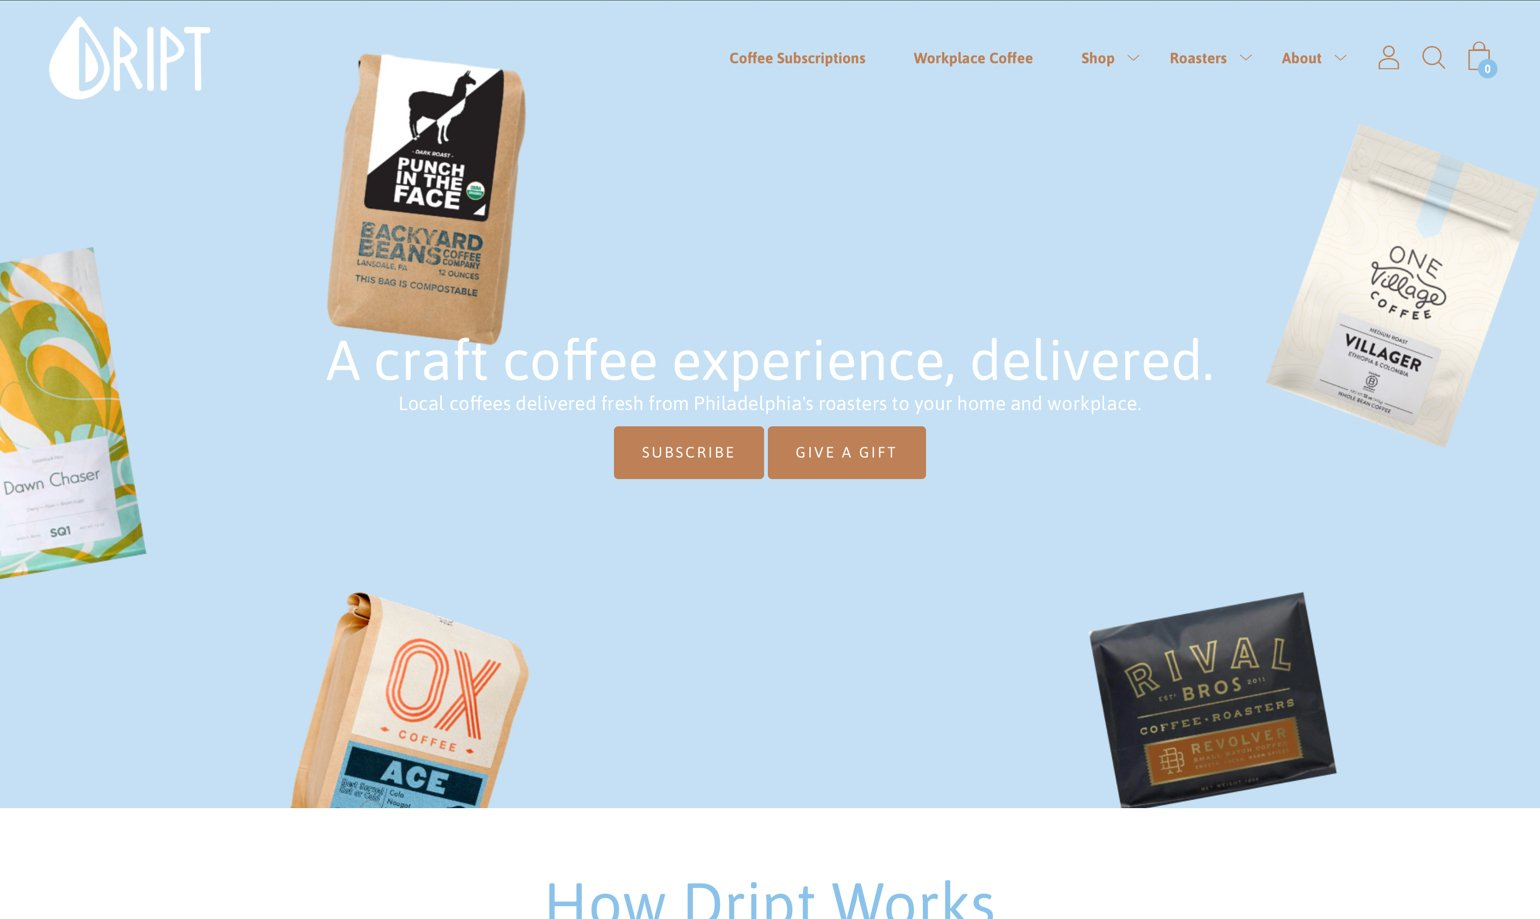 Drink dript website example